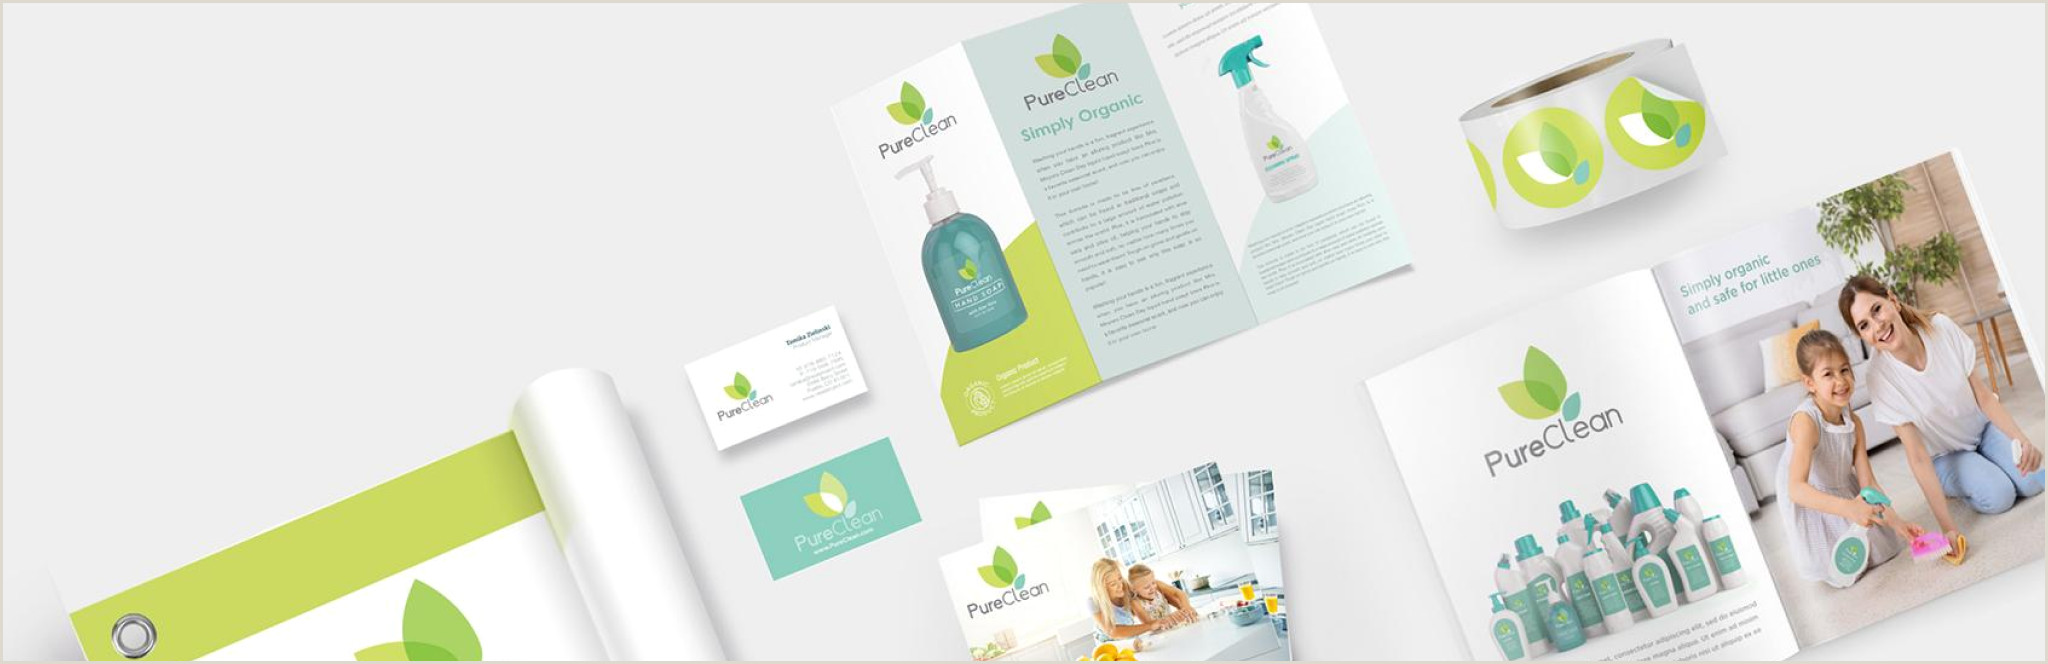 Best Site To Make Business Cards Printplace High Quality Line Printing Services